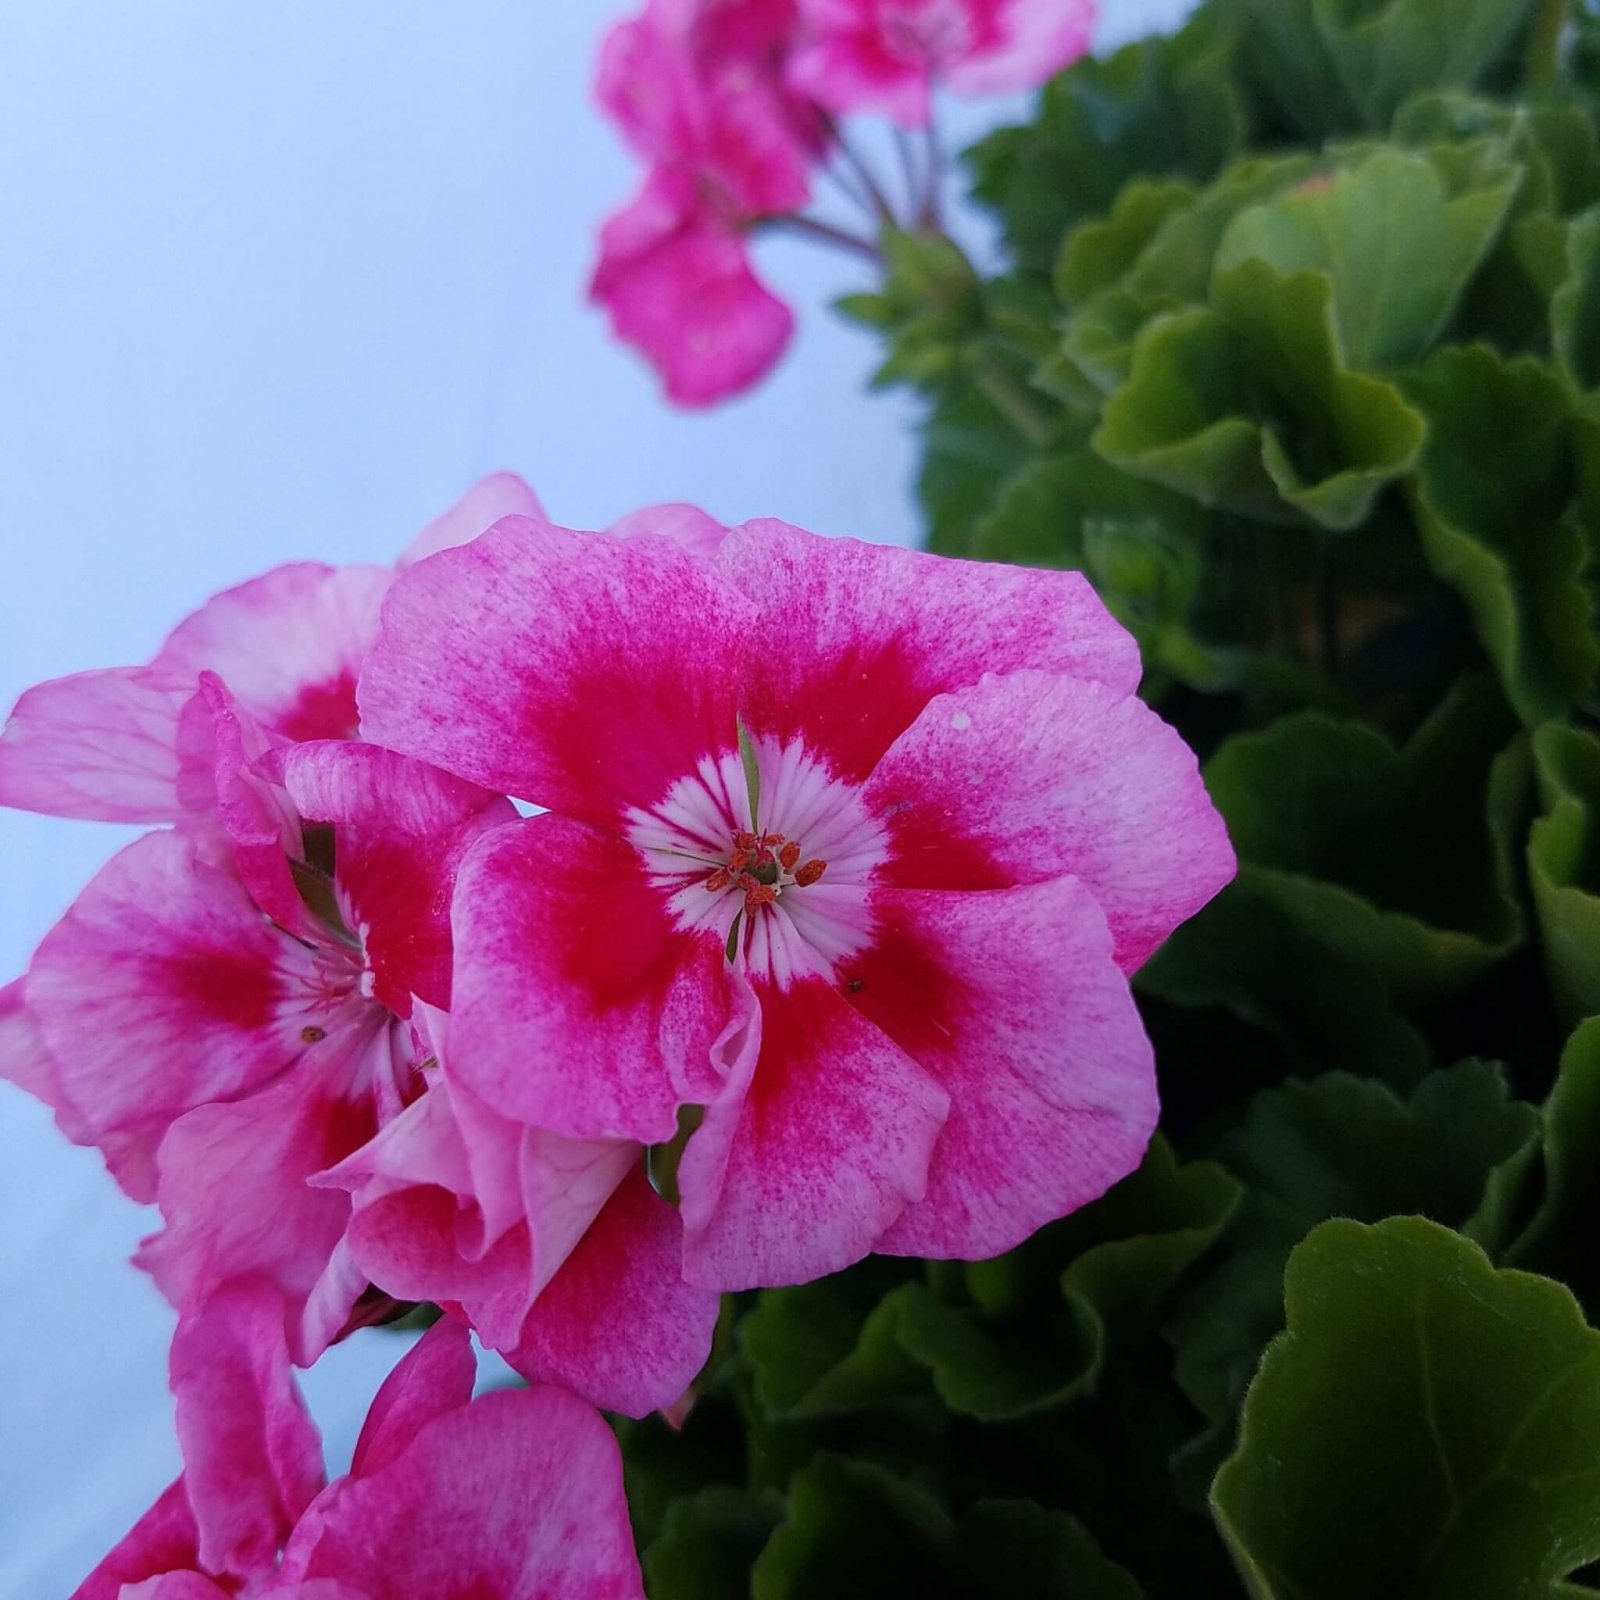 Geranium 'Survivor Hot Pink' - 6 1/2